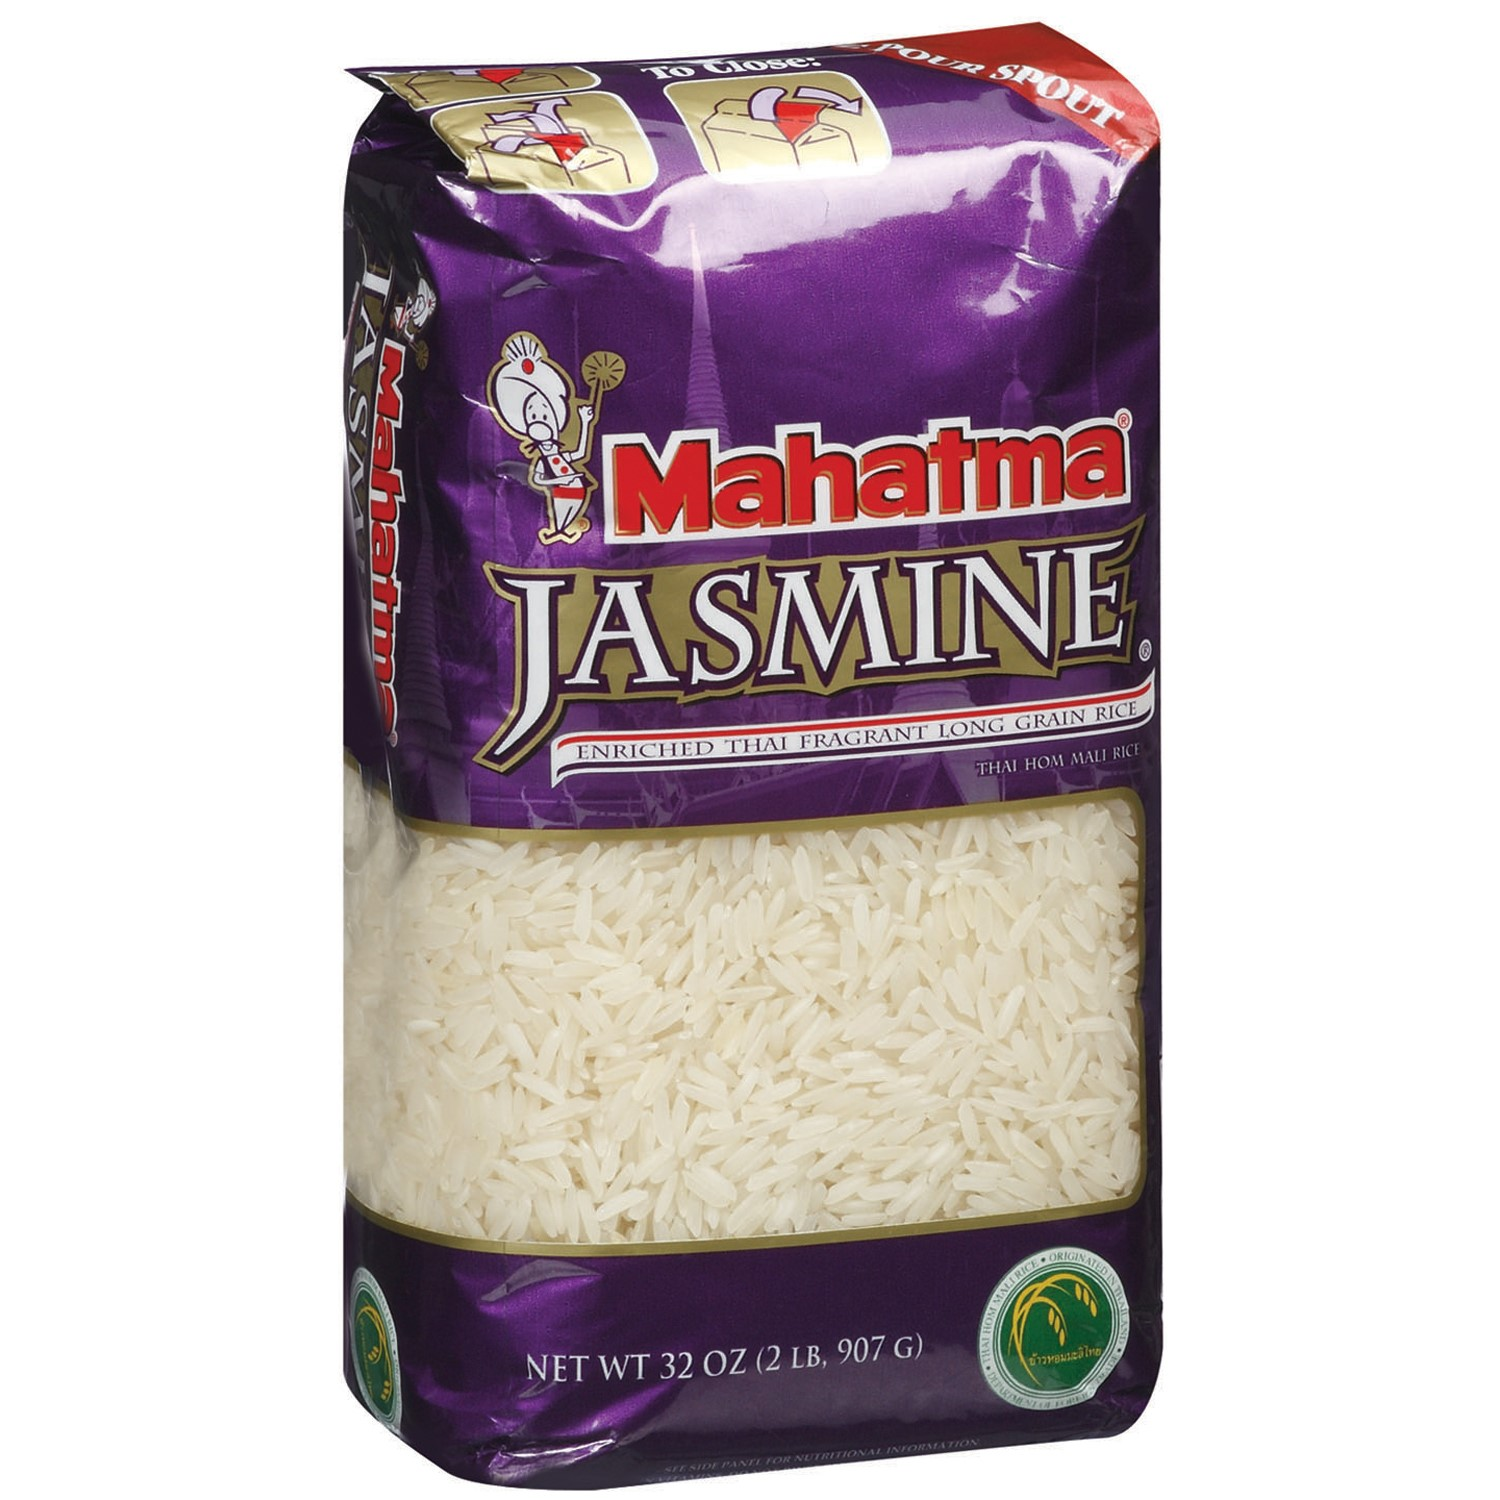 Mahatma Jasmine Long Grain Rice, 32.0 OZ